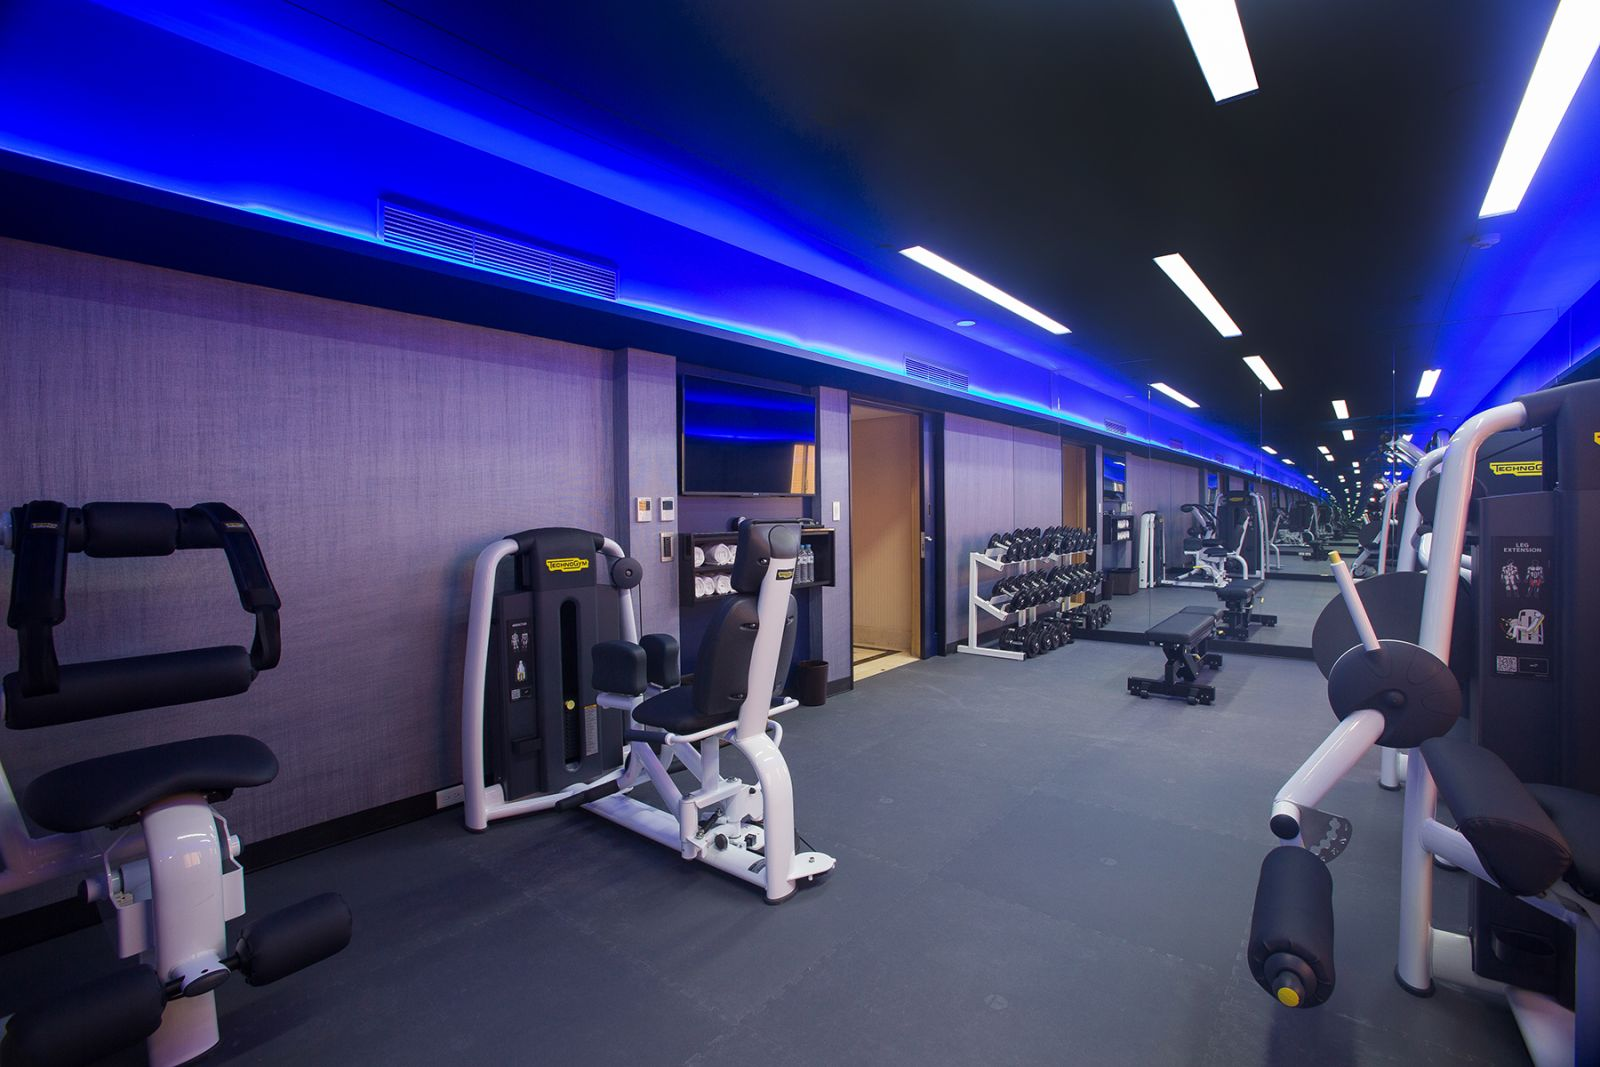 【NOTICE】The Workout Room is temporarily closed for maintenance